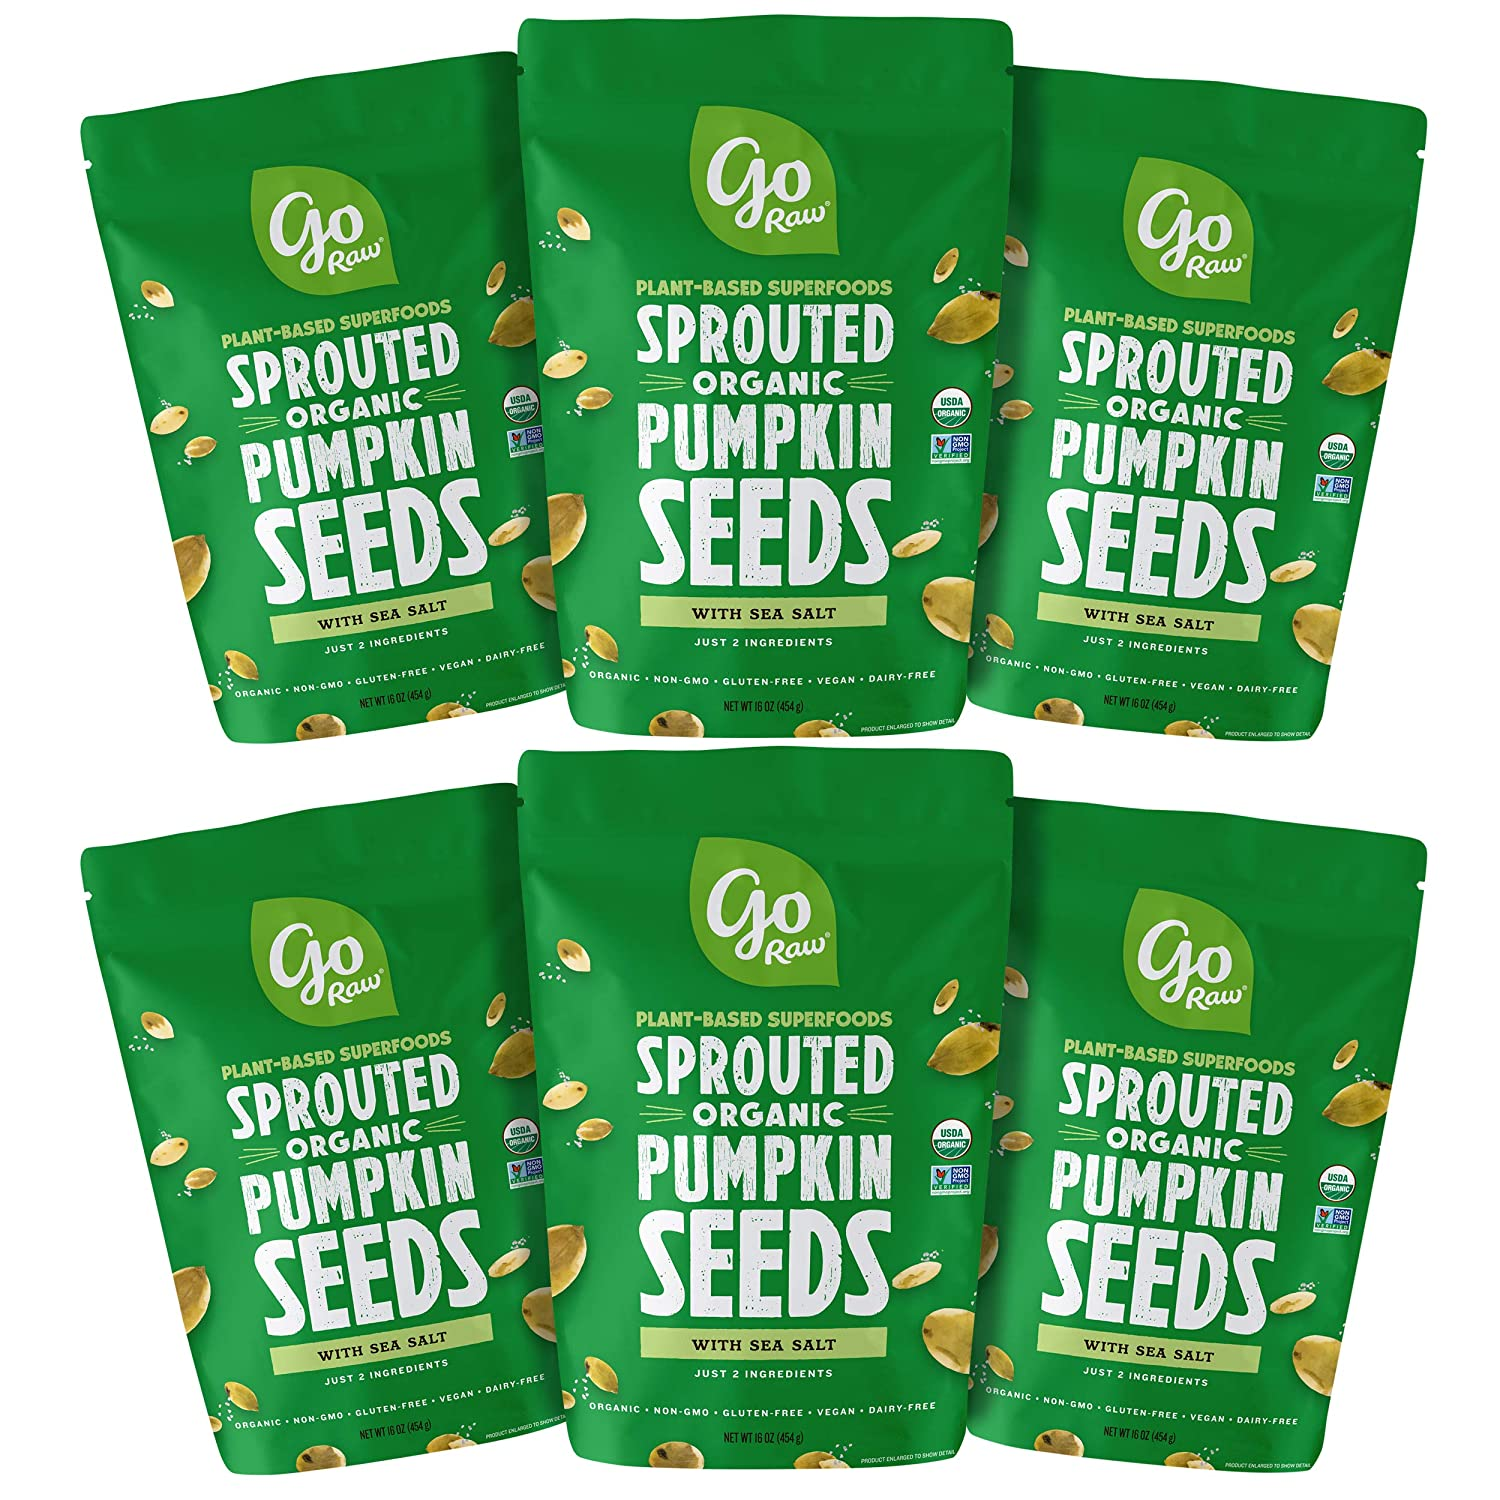 Go Raw Sprouted Pumpkin Seeds (Pack of 6)